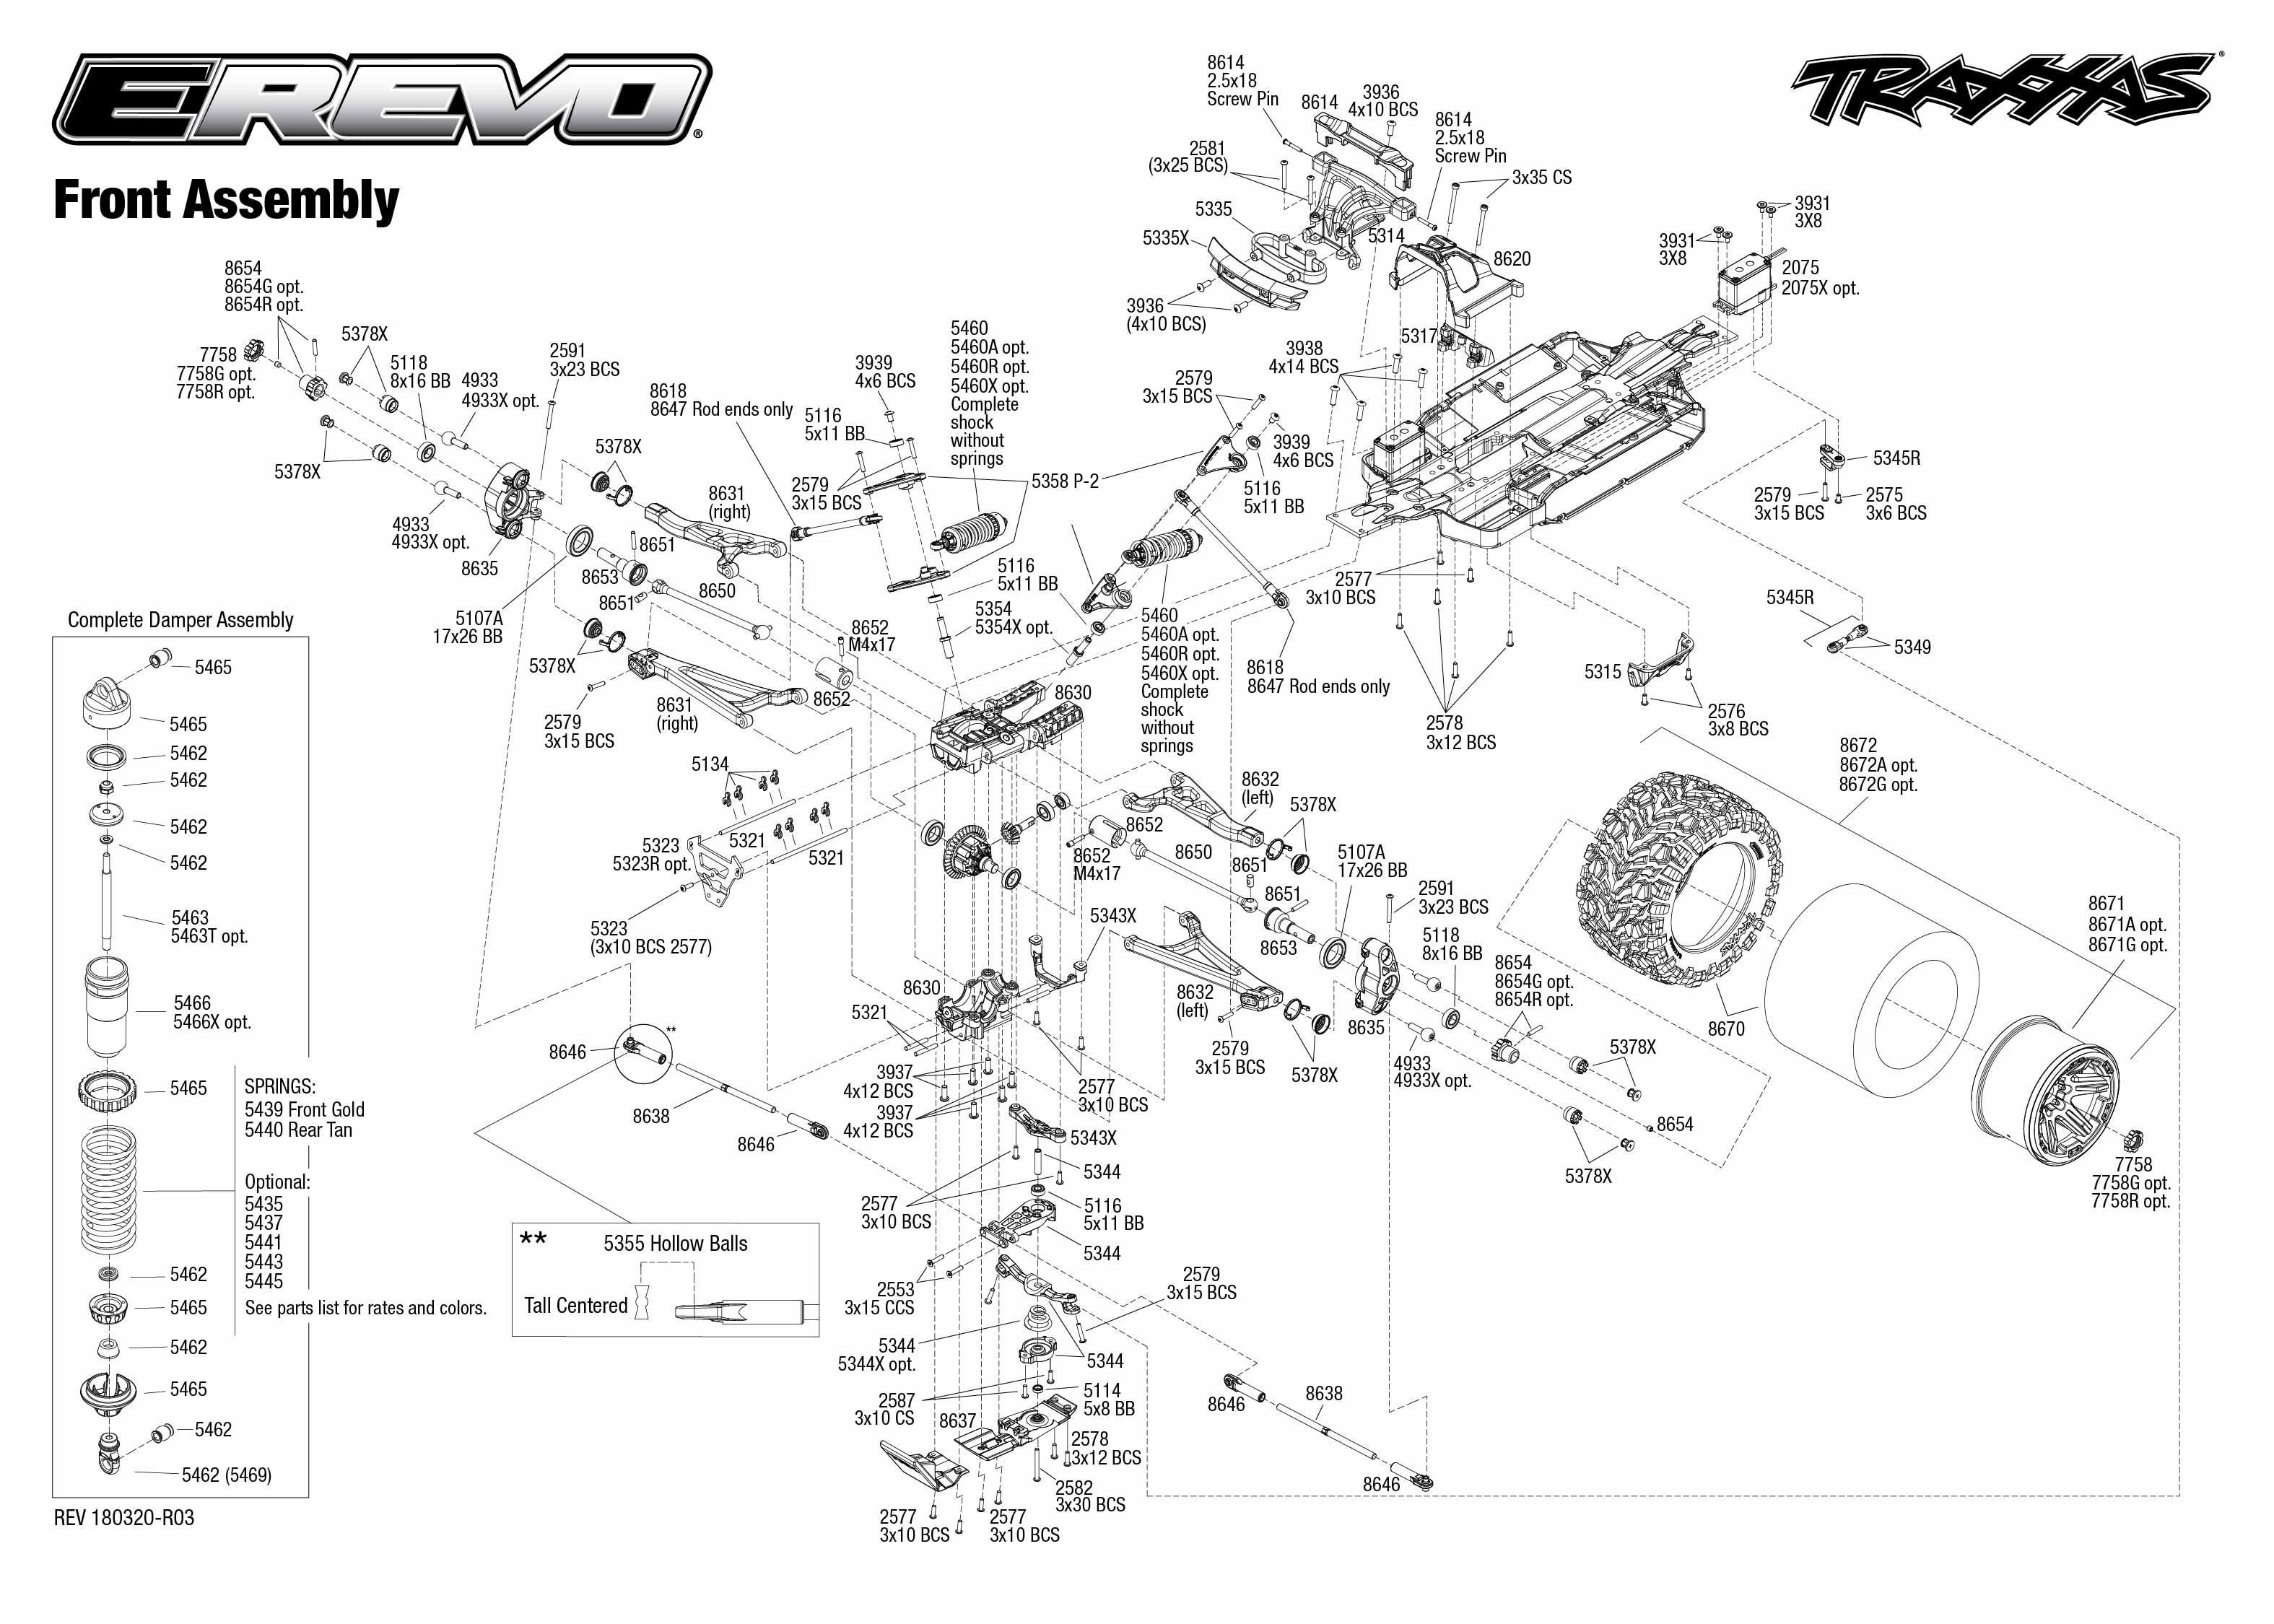 Exploded view: Traxxas E-Revo 2 1:8 Brushless TQi TSM RTR